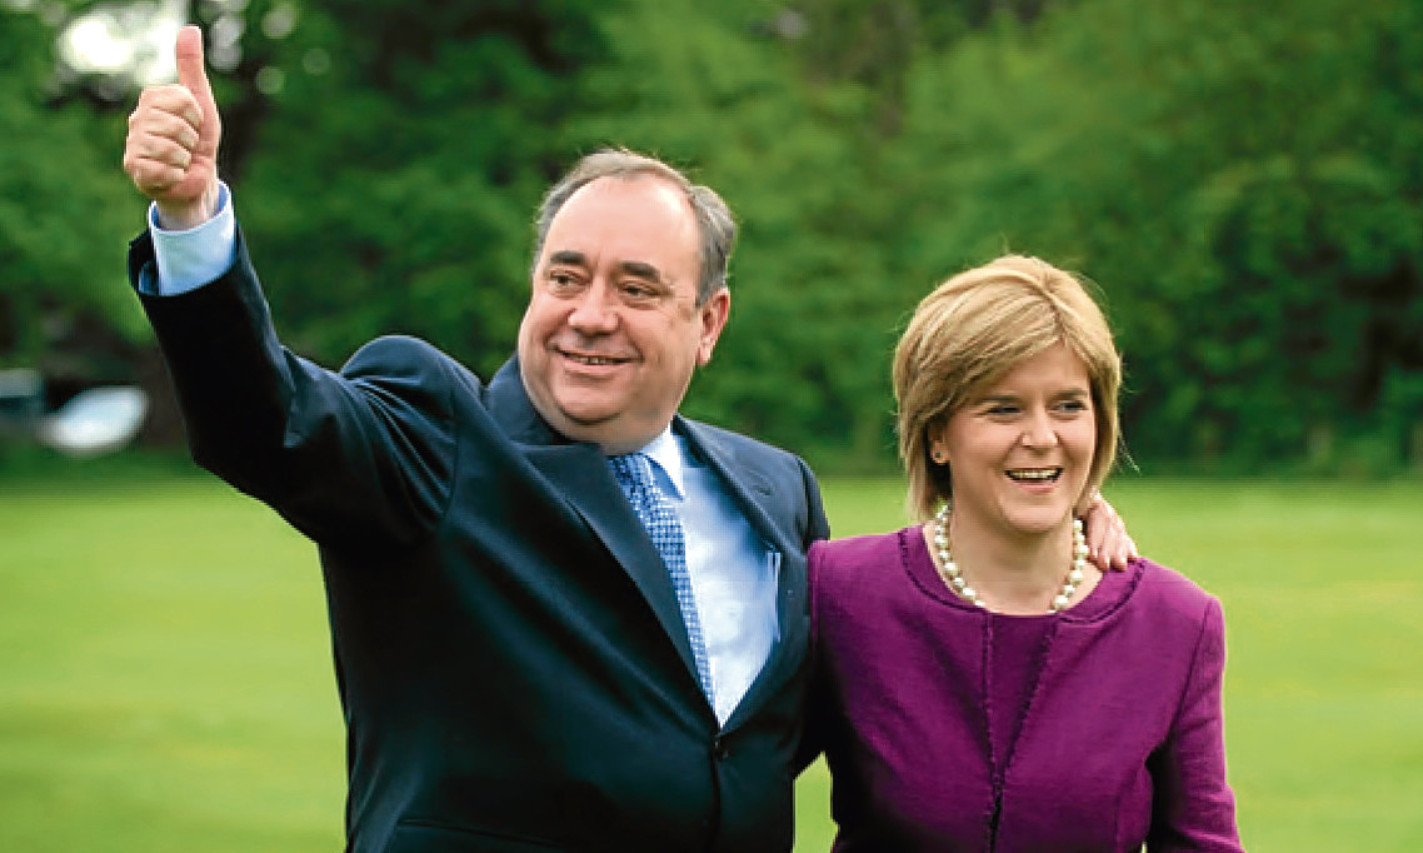 Alex Salmond and Nicola Sturgeon celebrate election victory in 2007.